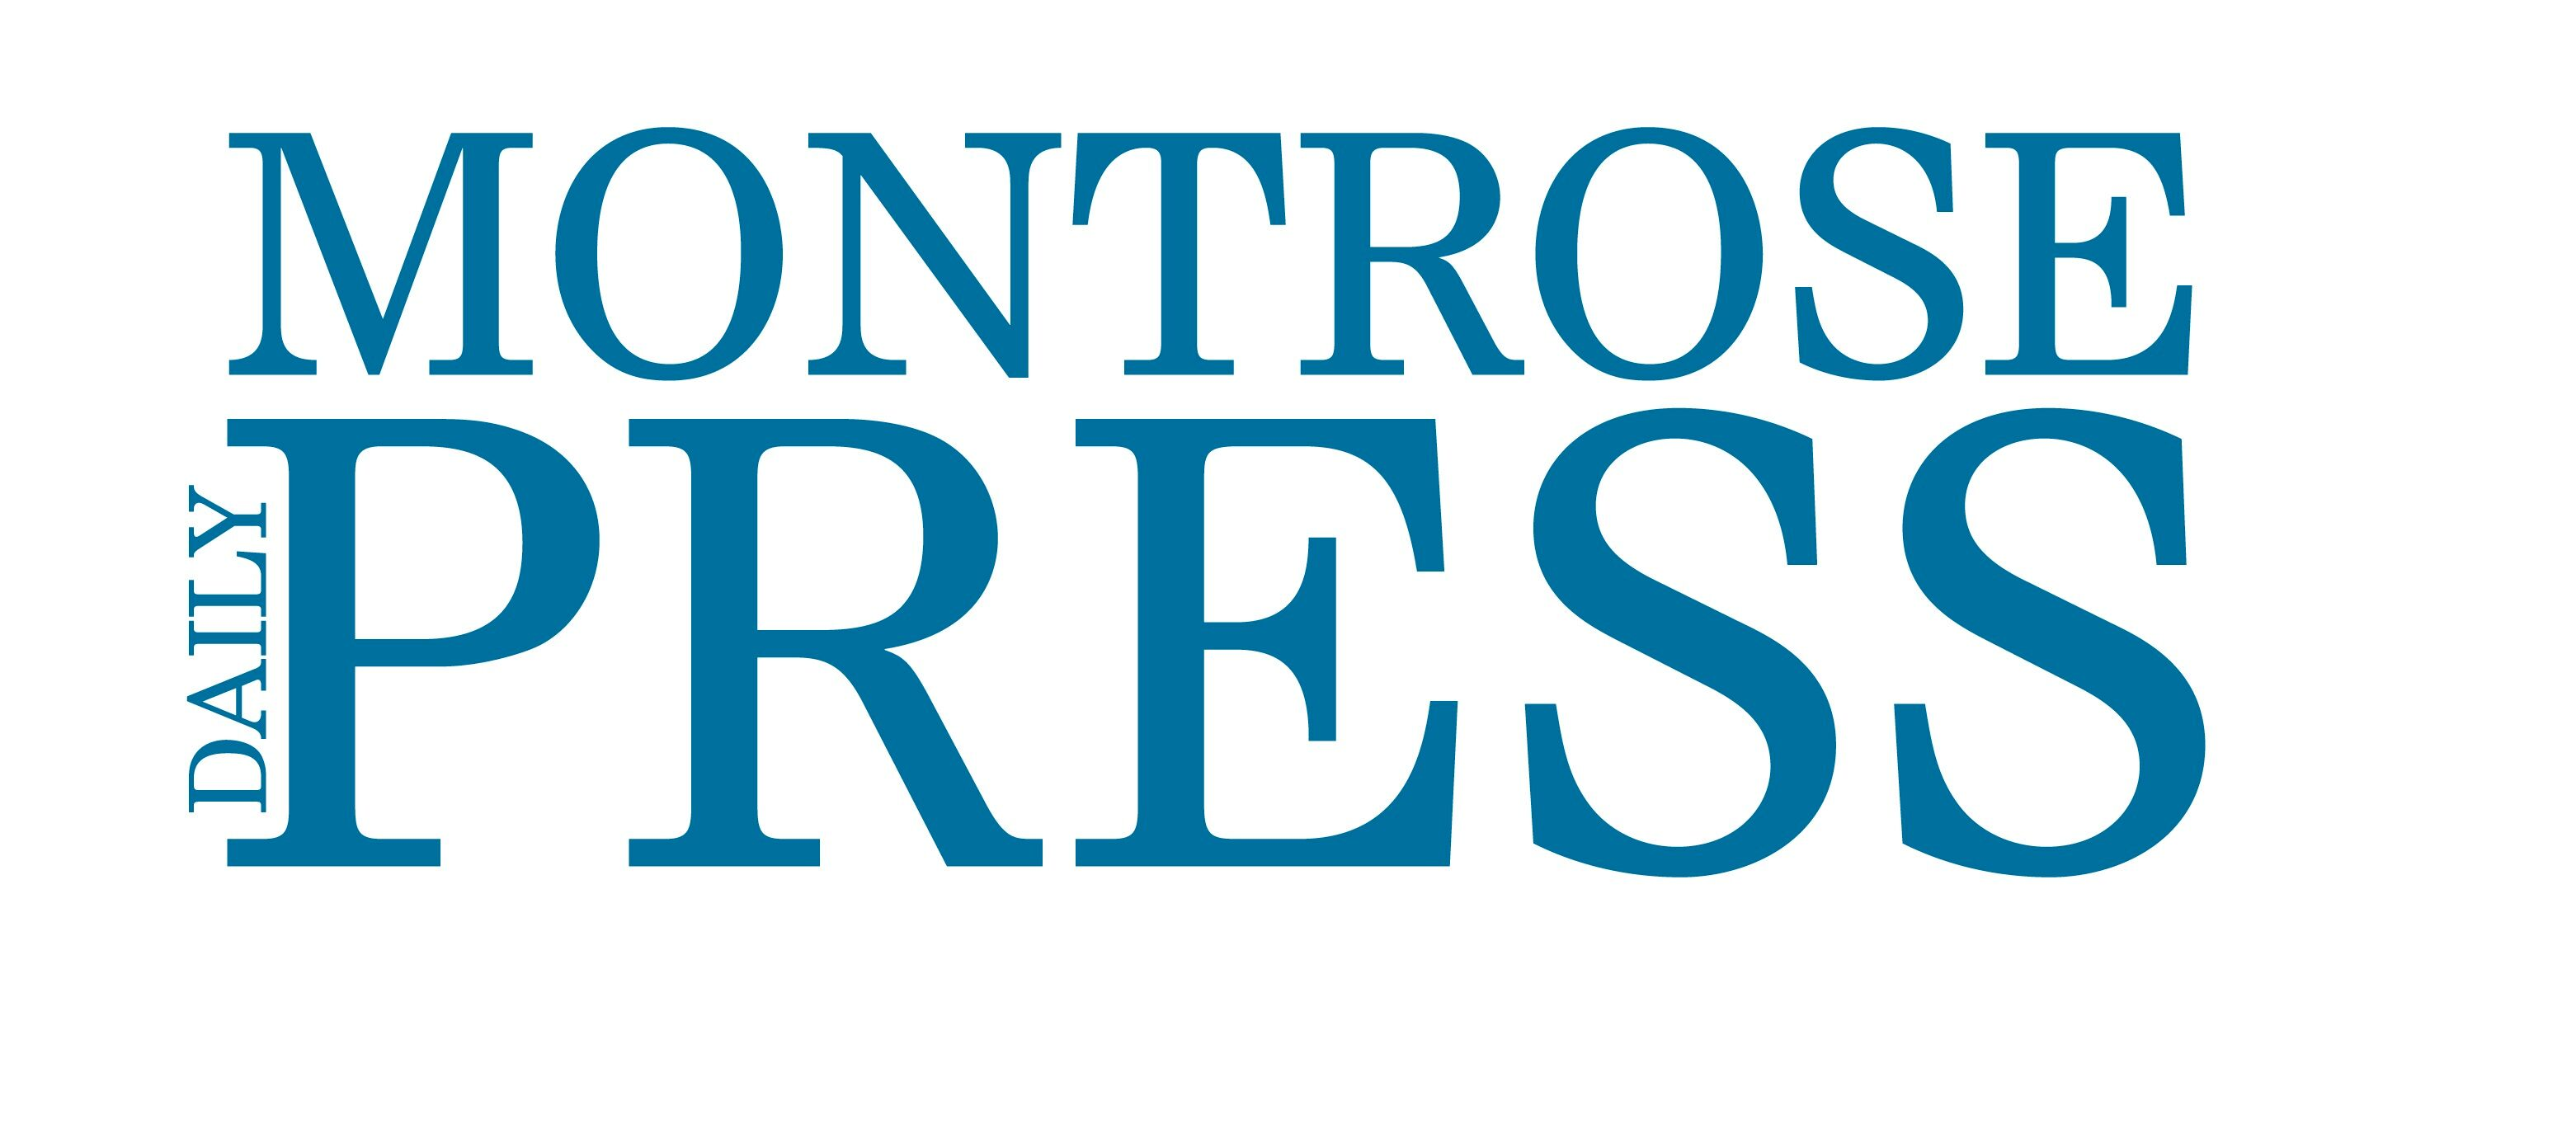 Montrose press logo